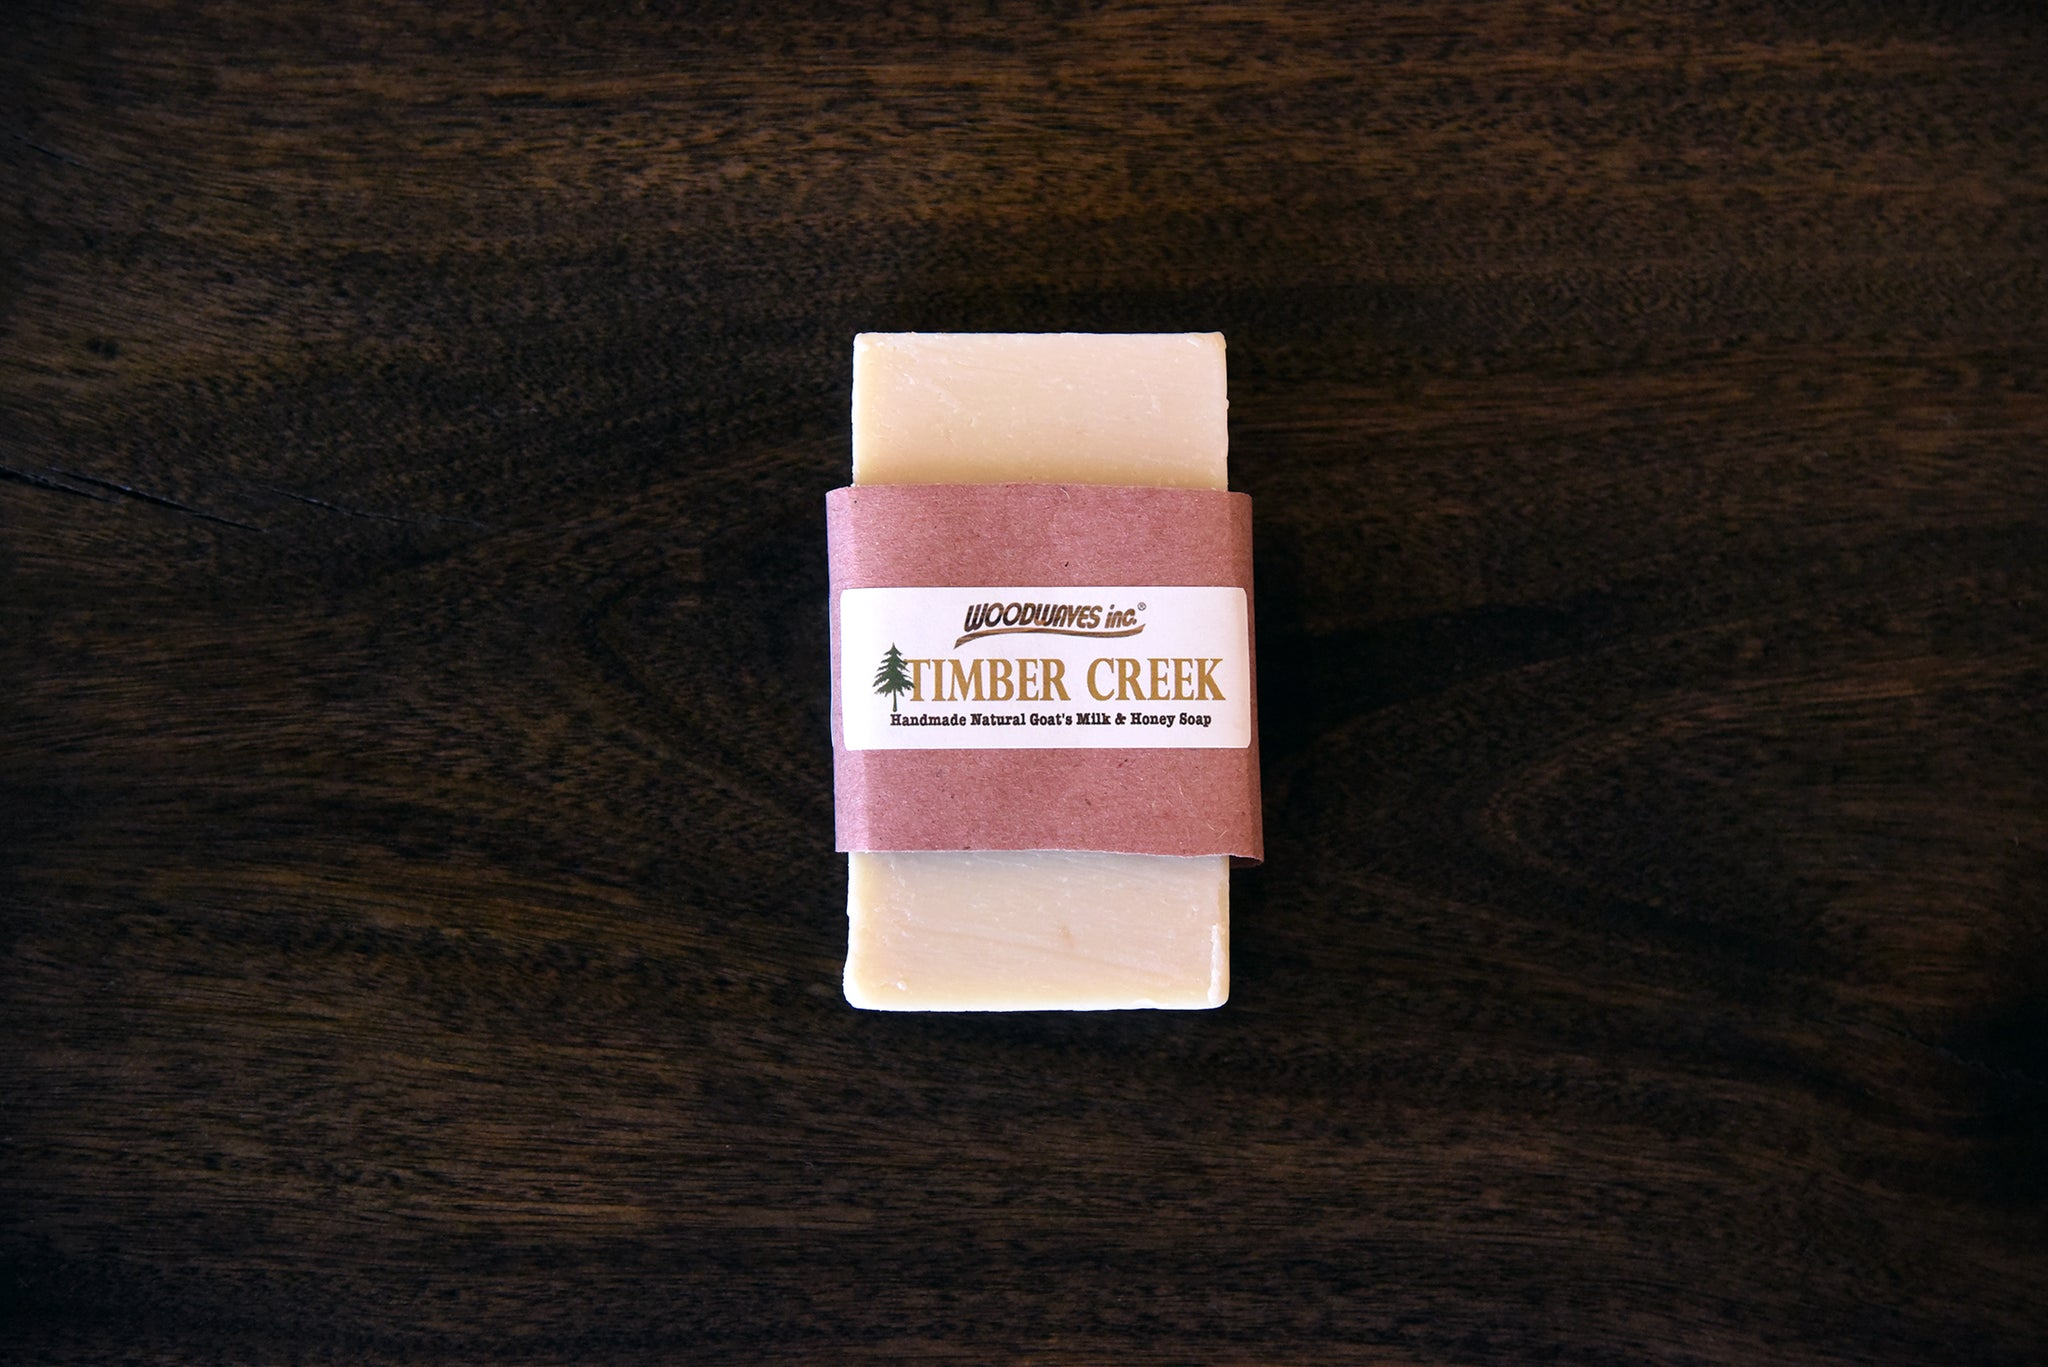 Men's Handmade Goat's Milk Bar Soap Gift Set - Timber Creek